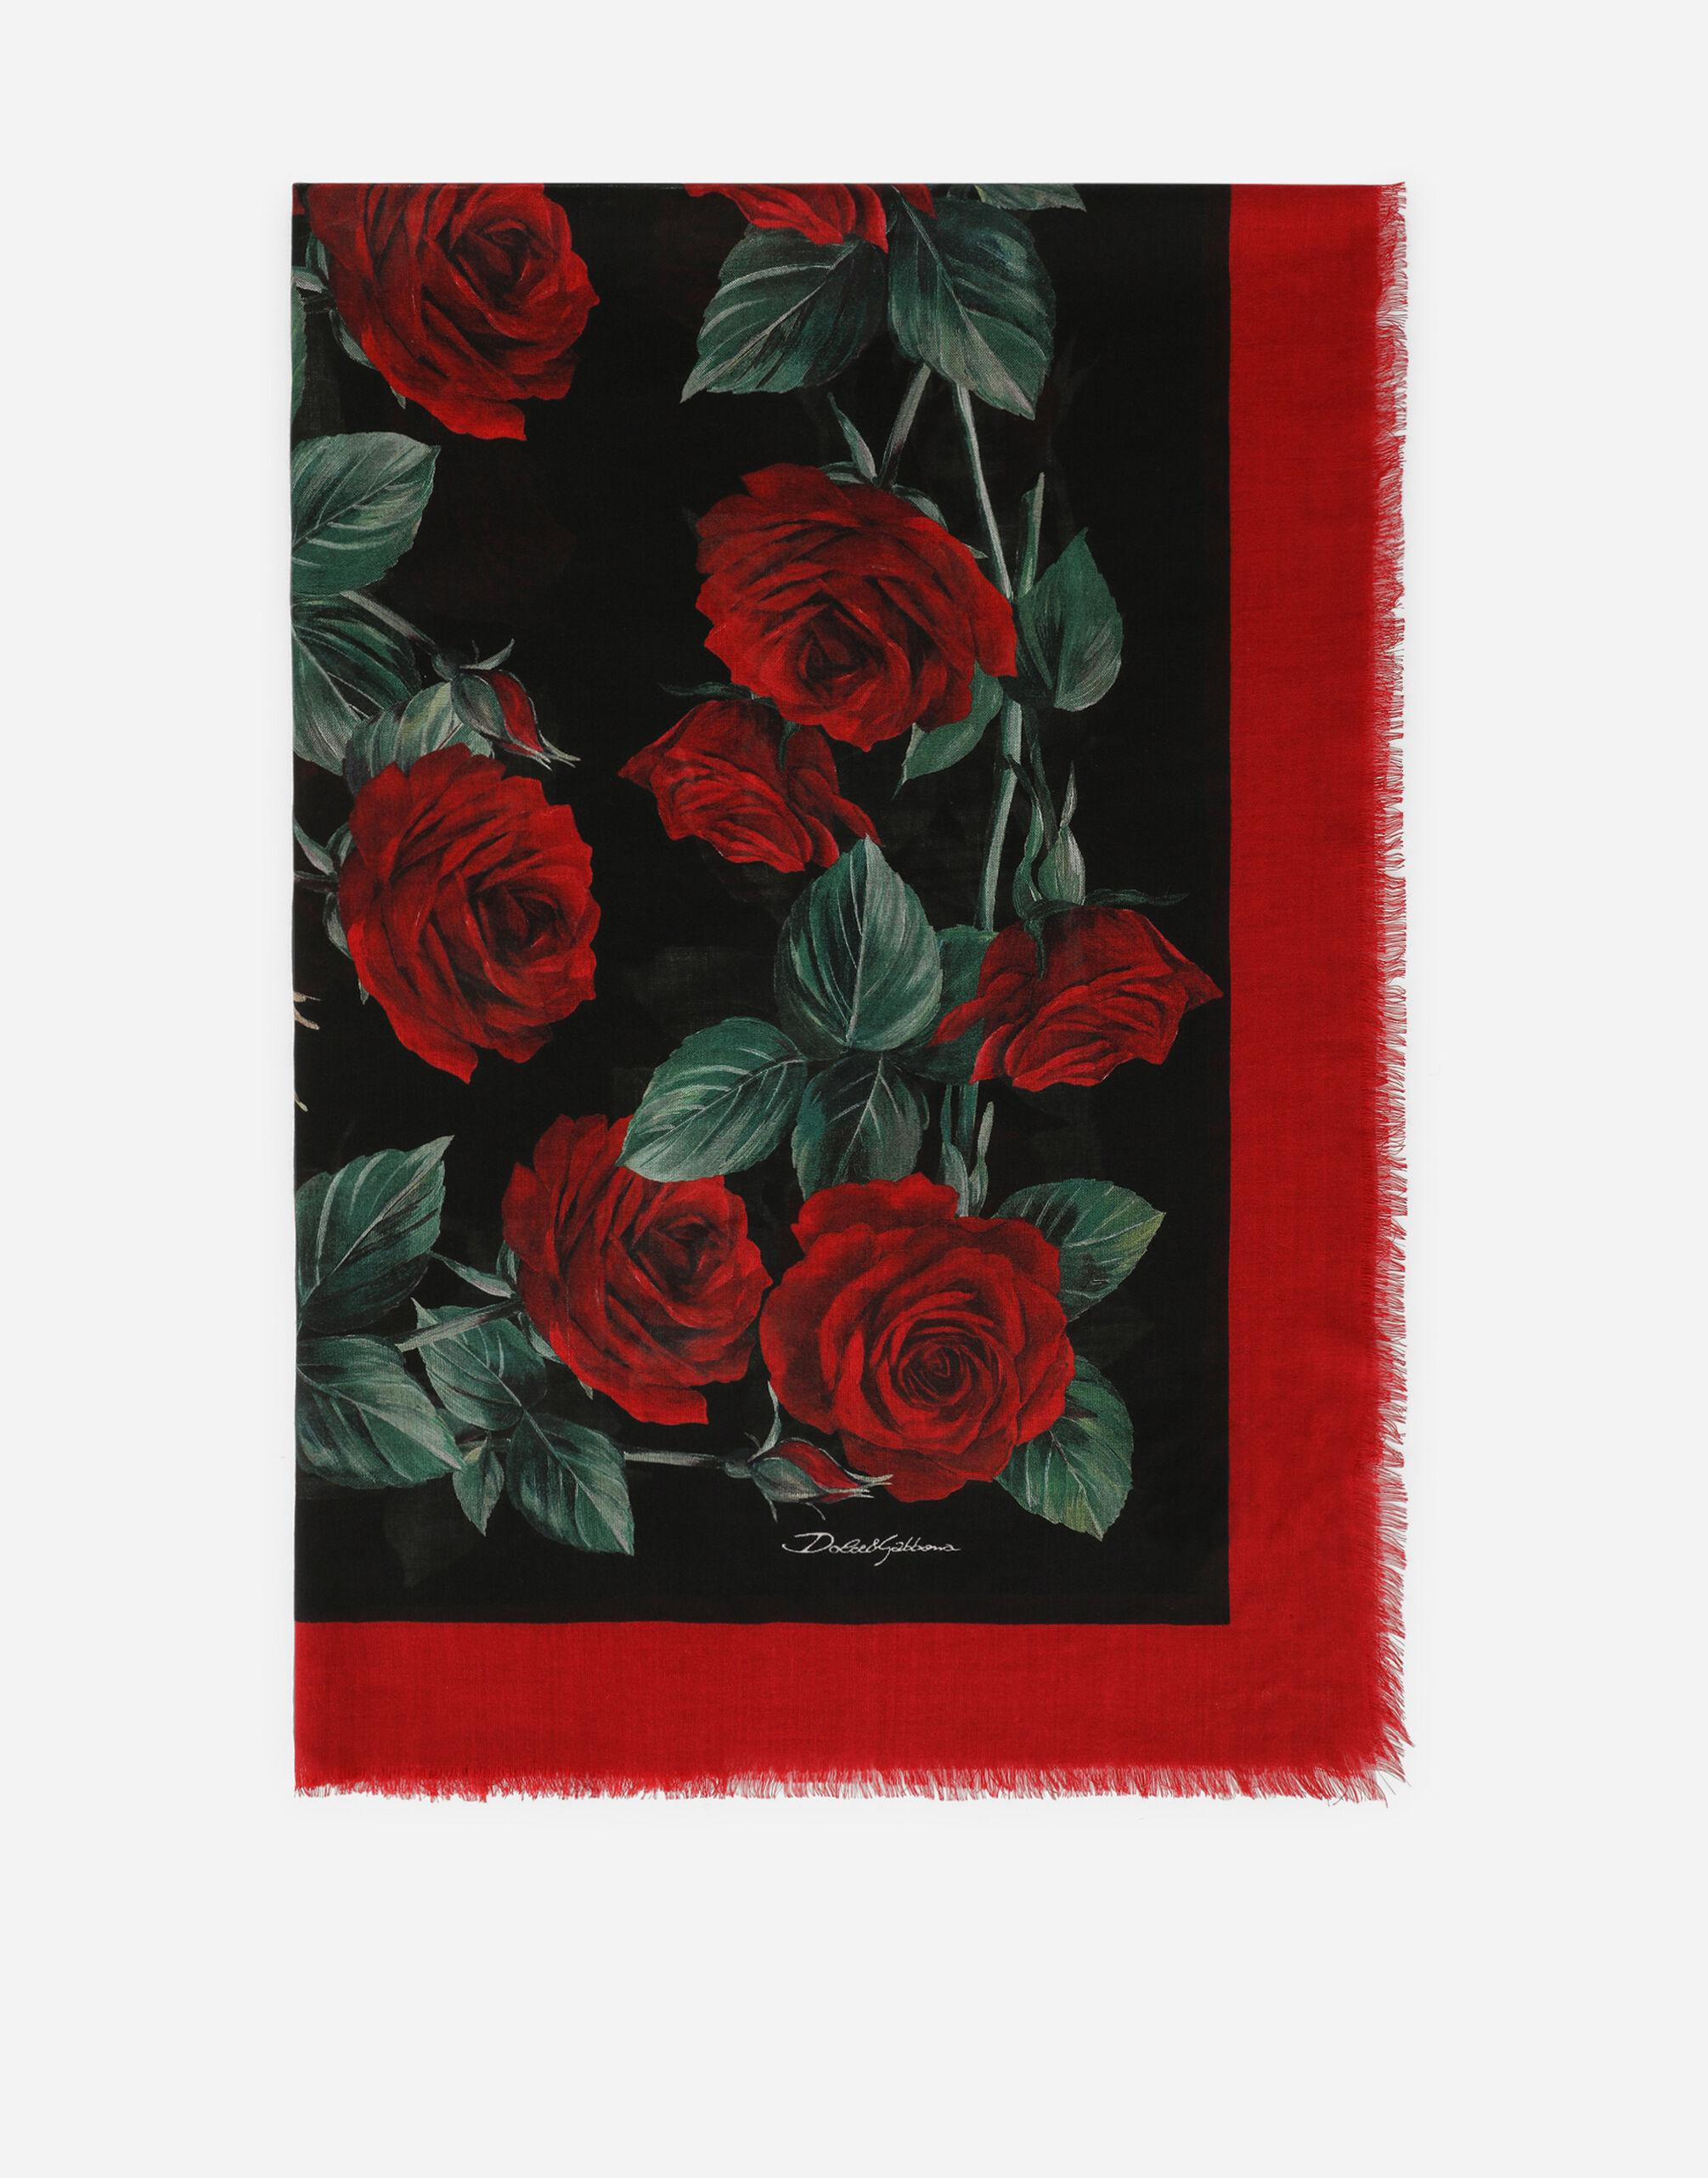 Rose-print silk and cashmere scarf (140 x 140)